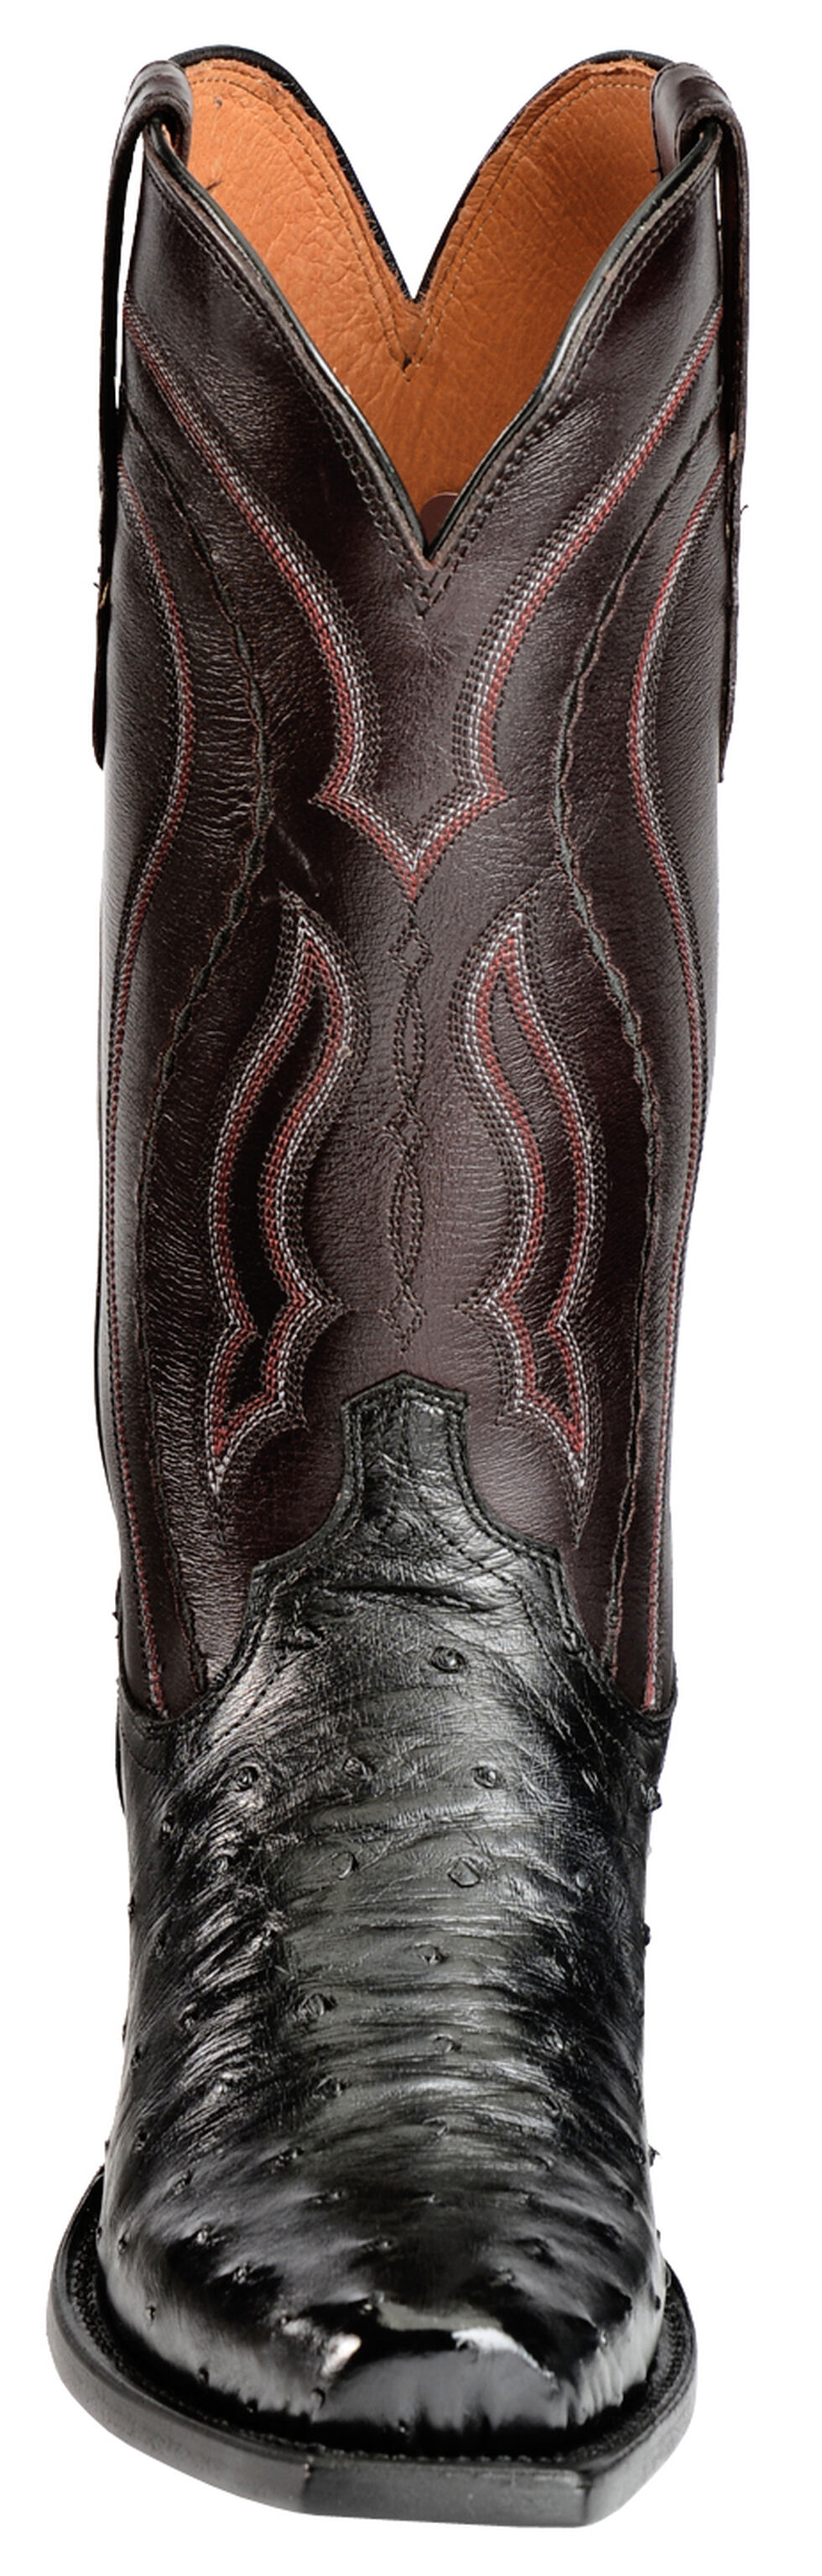 Lucchese Handcrafted 1883 Full Quill Ostrich Western Boots - Snoot Toe, Black, hi-res